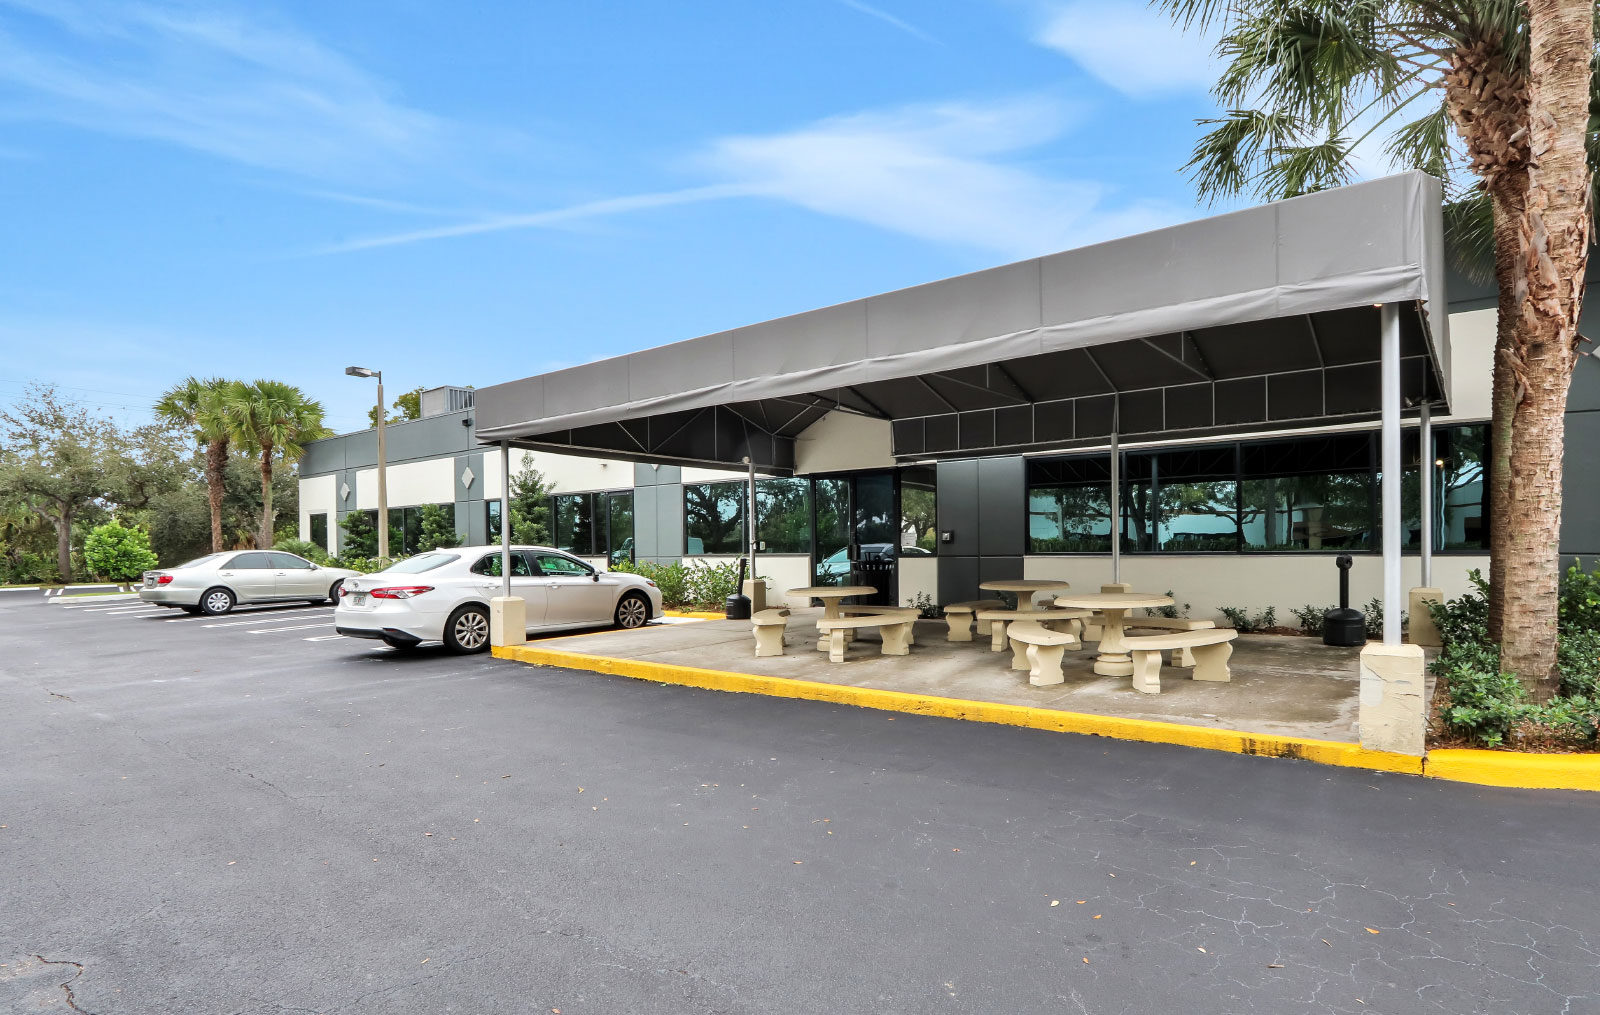 A view of the covered patio with concrete tables and benches with handicapped parking spaces to the left of it.